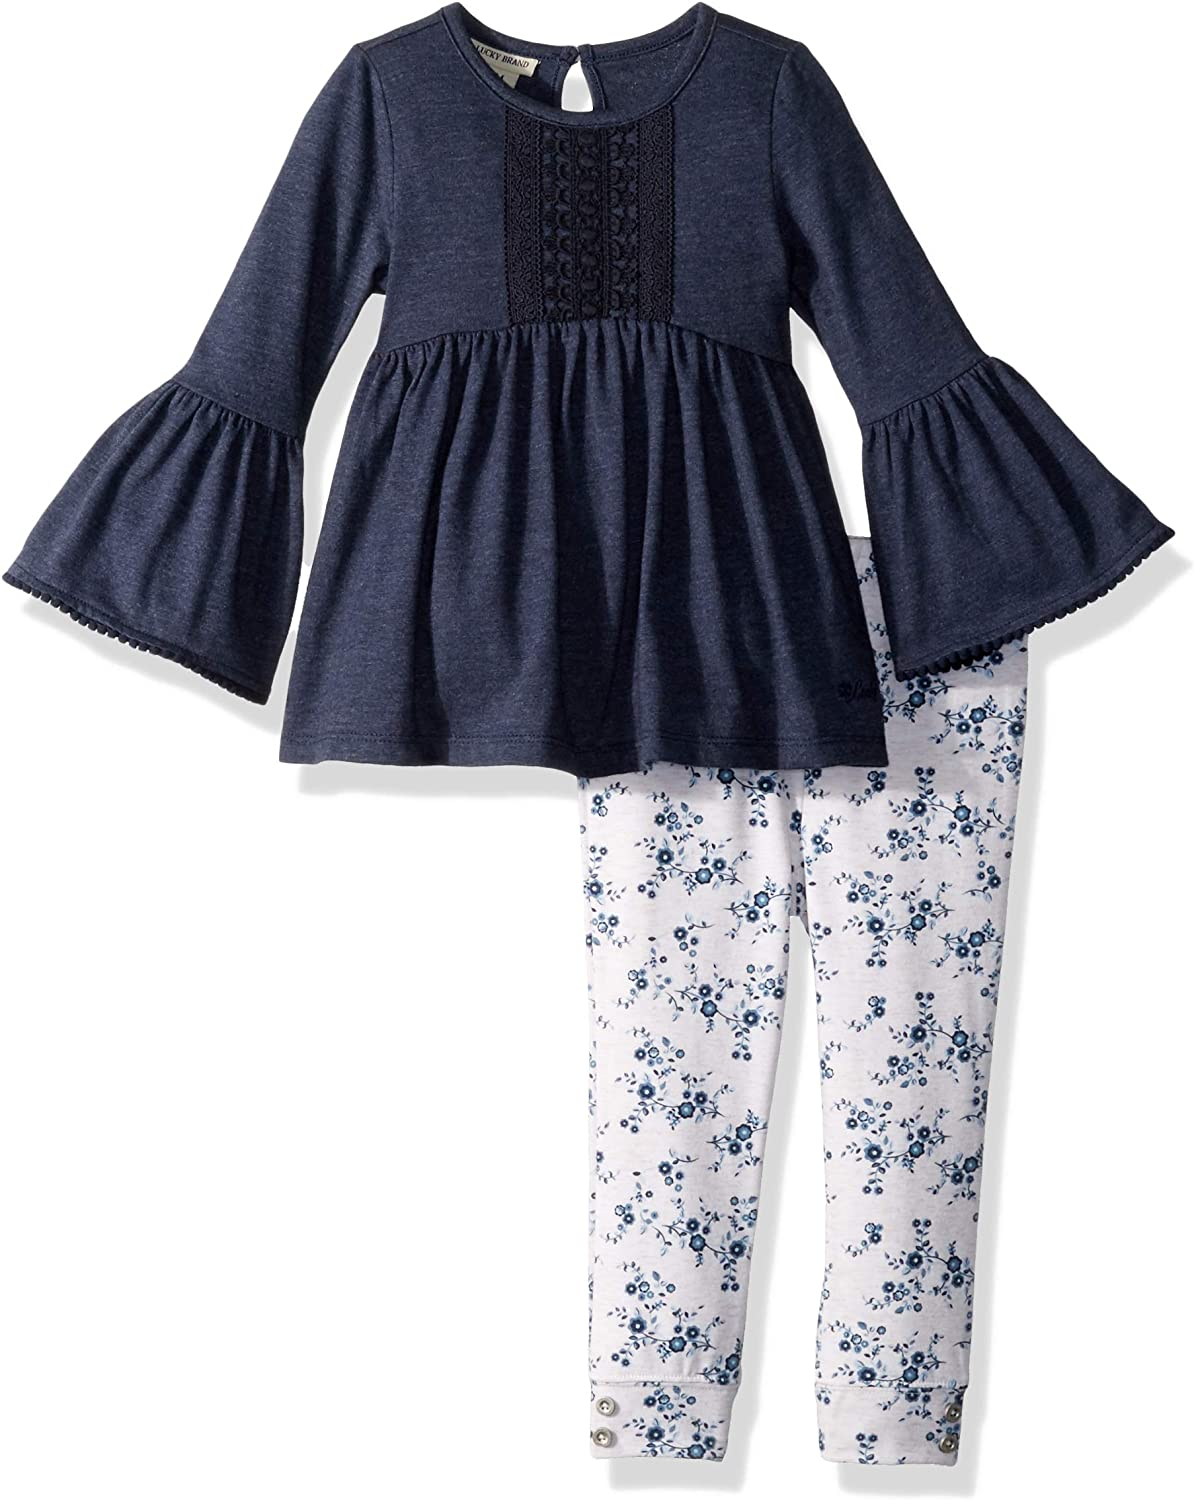 Lucky Sets Girls 2 Pieces Tunic Legging Set